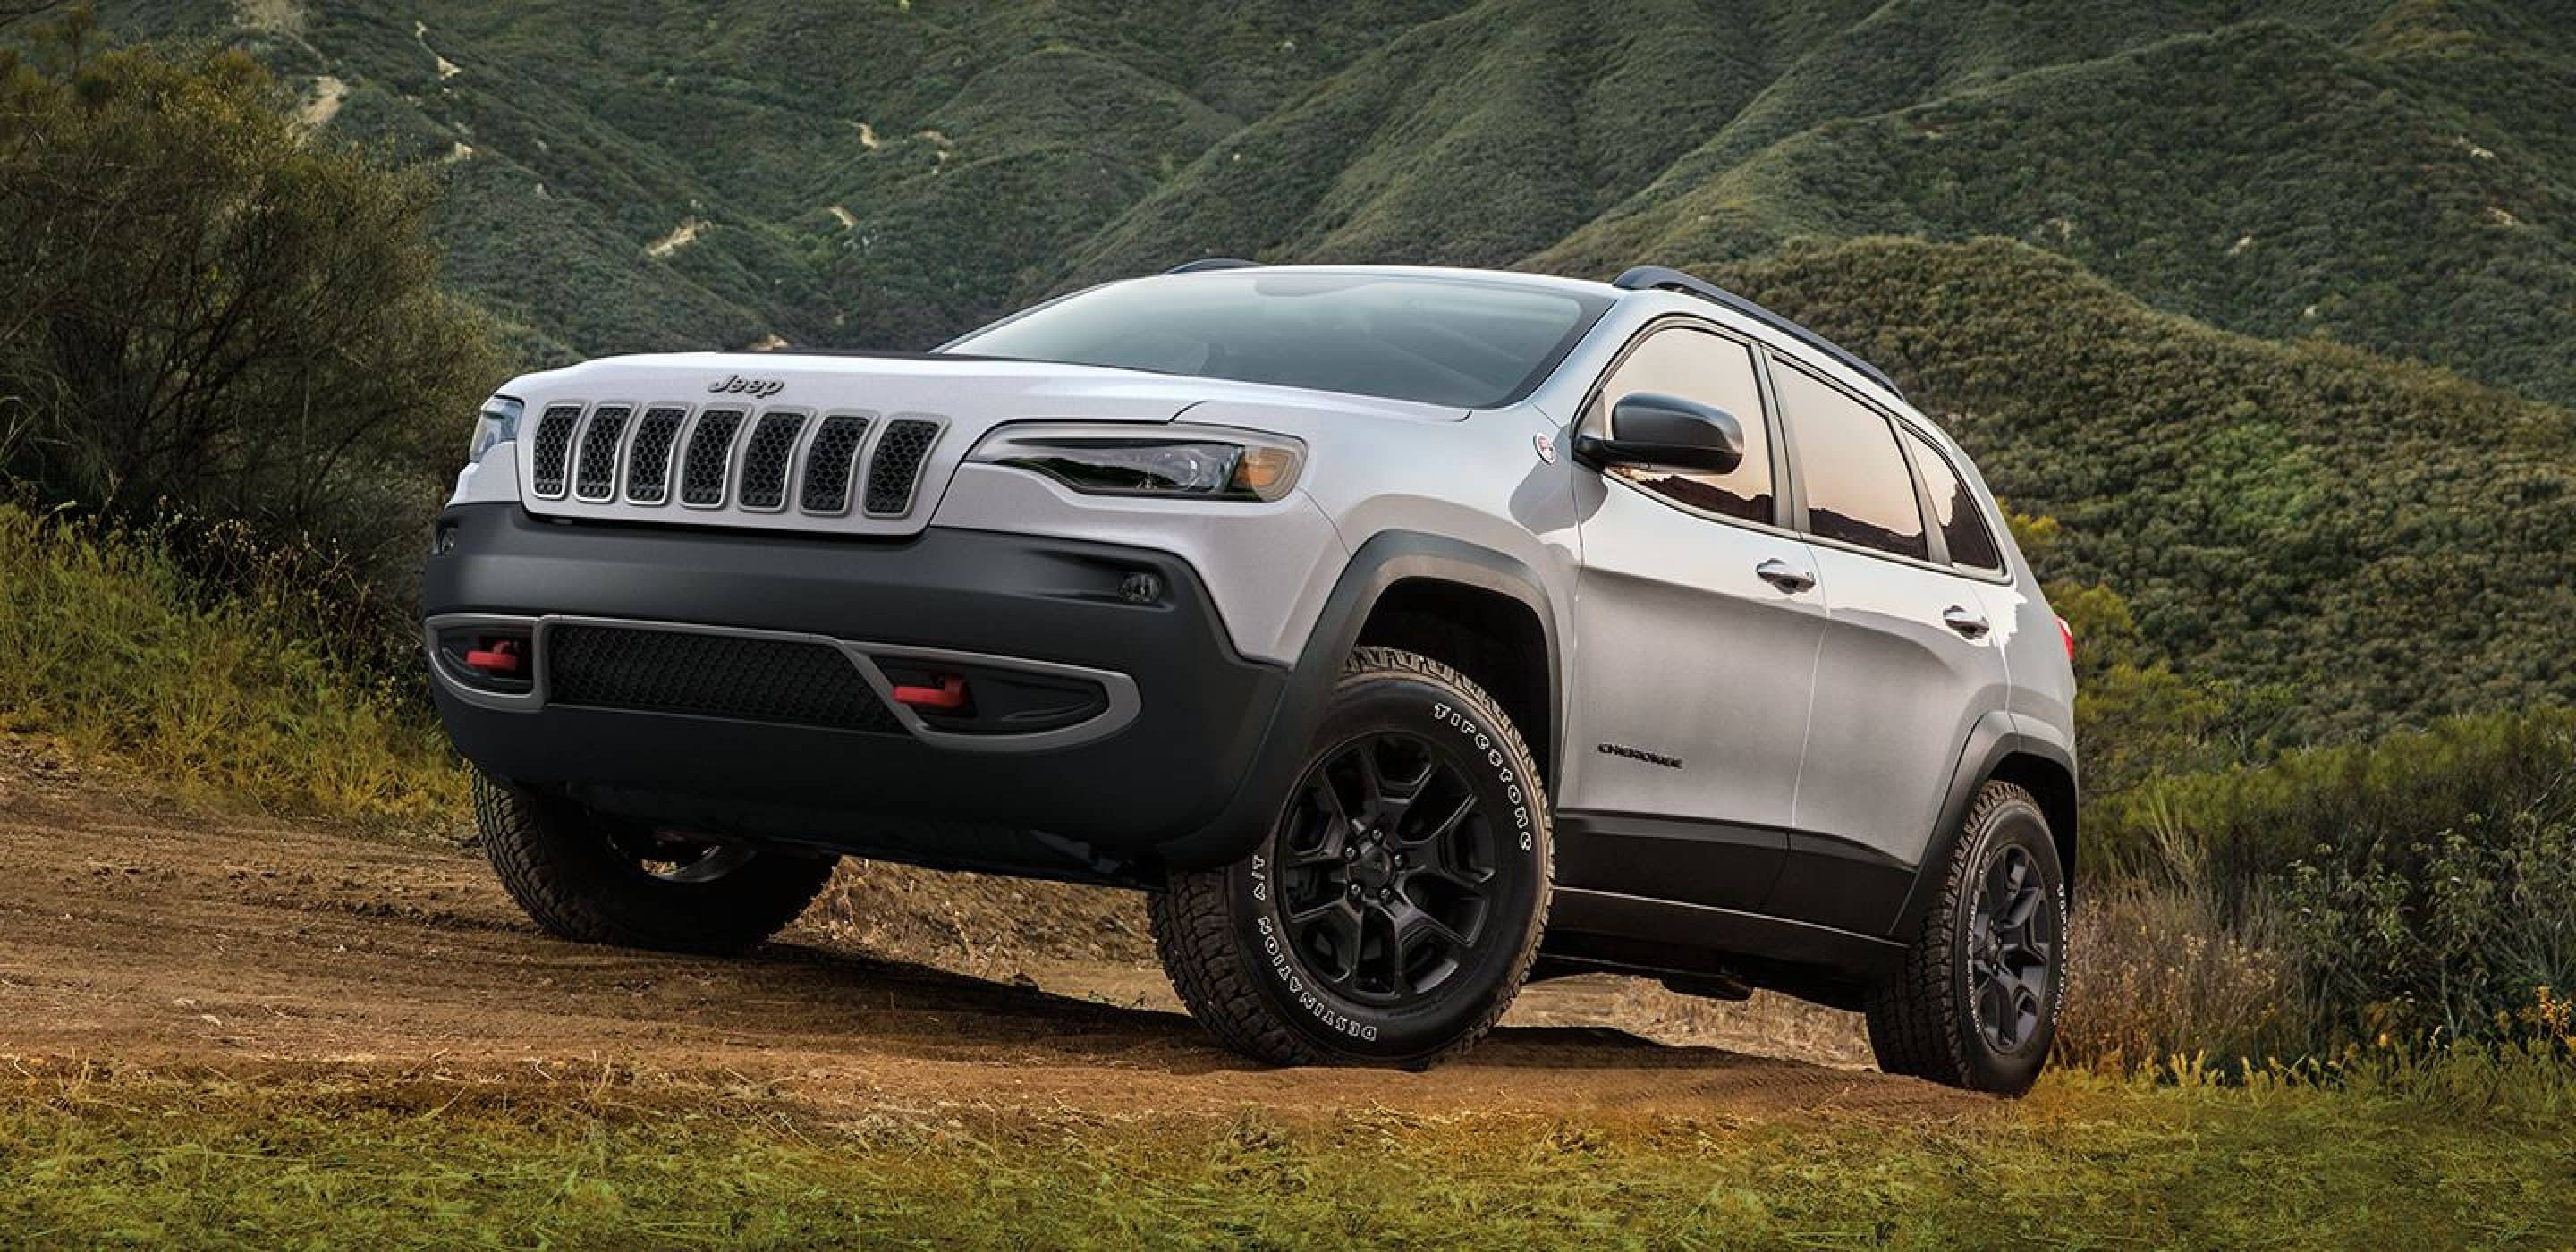 jeep lease perks to awarded grand though the model especially in a future pin tips news new brand an is excellent c and enjoy iconic of way cherokee